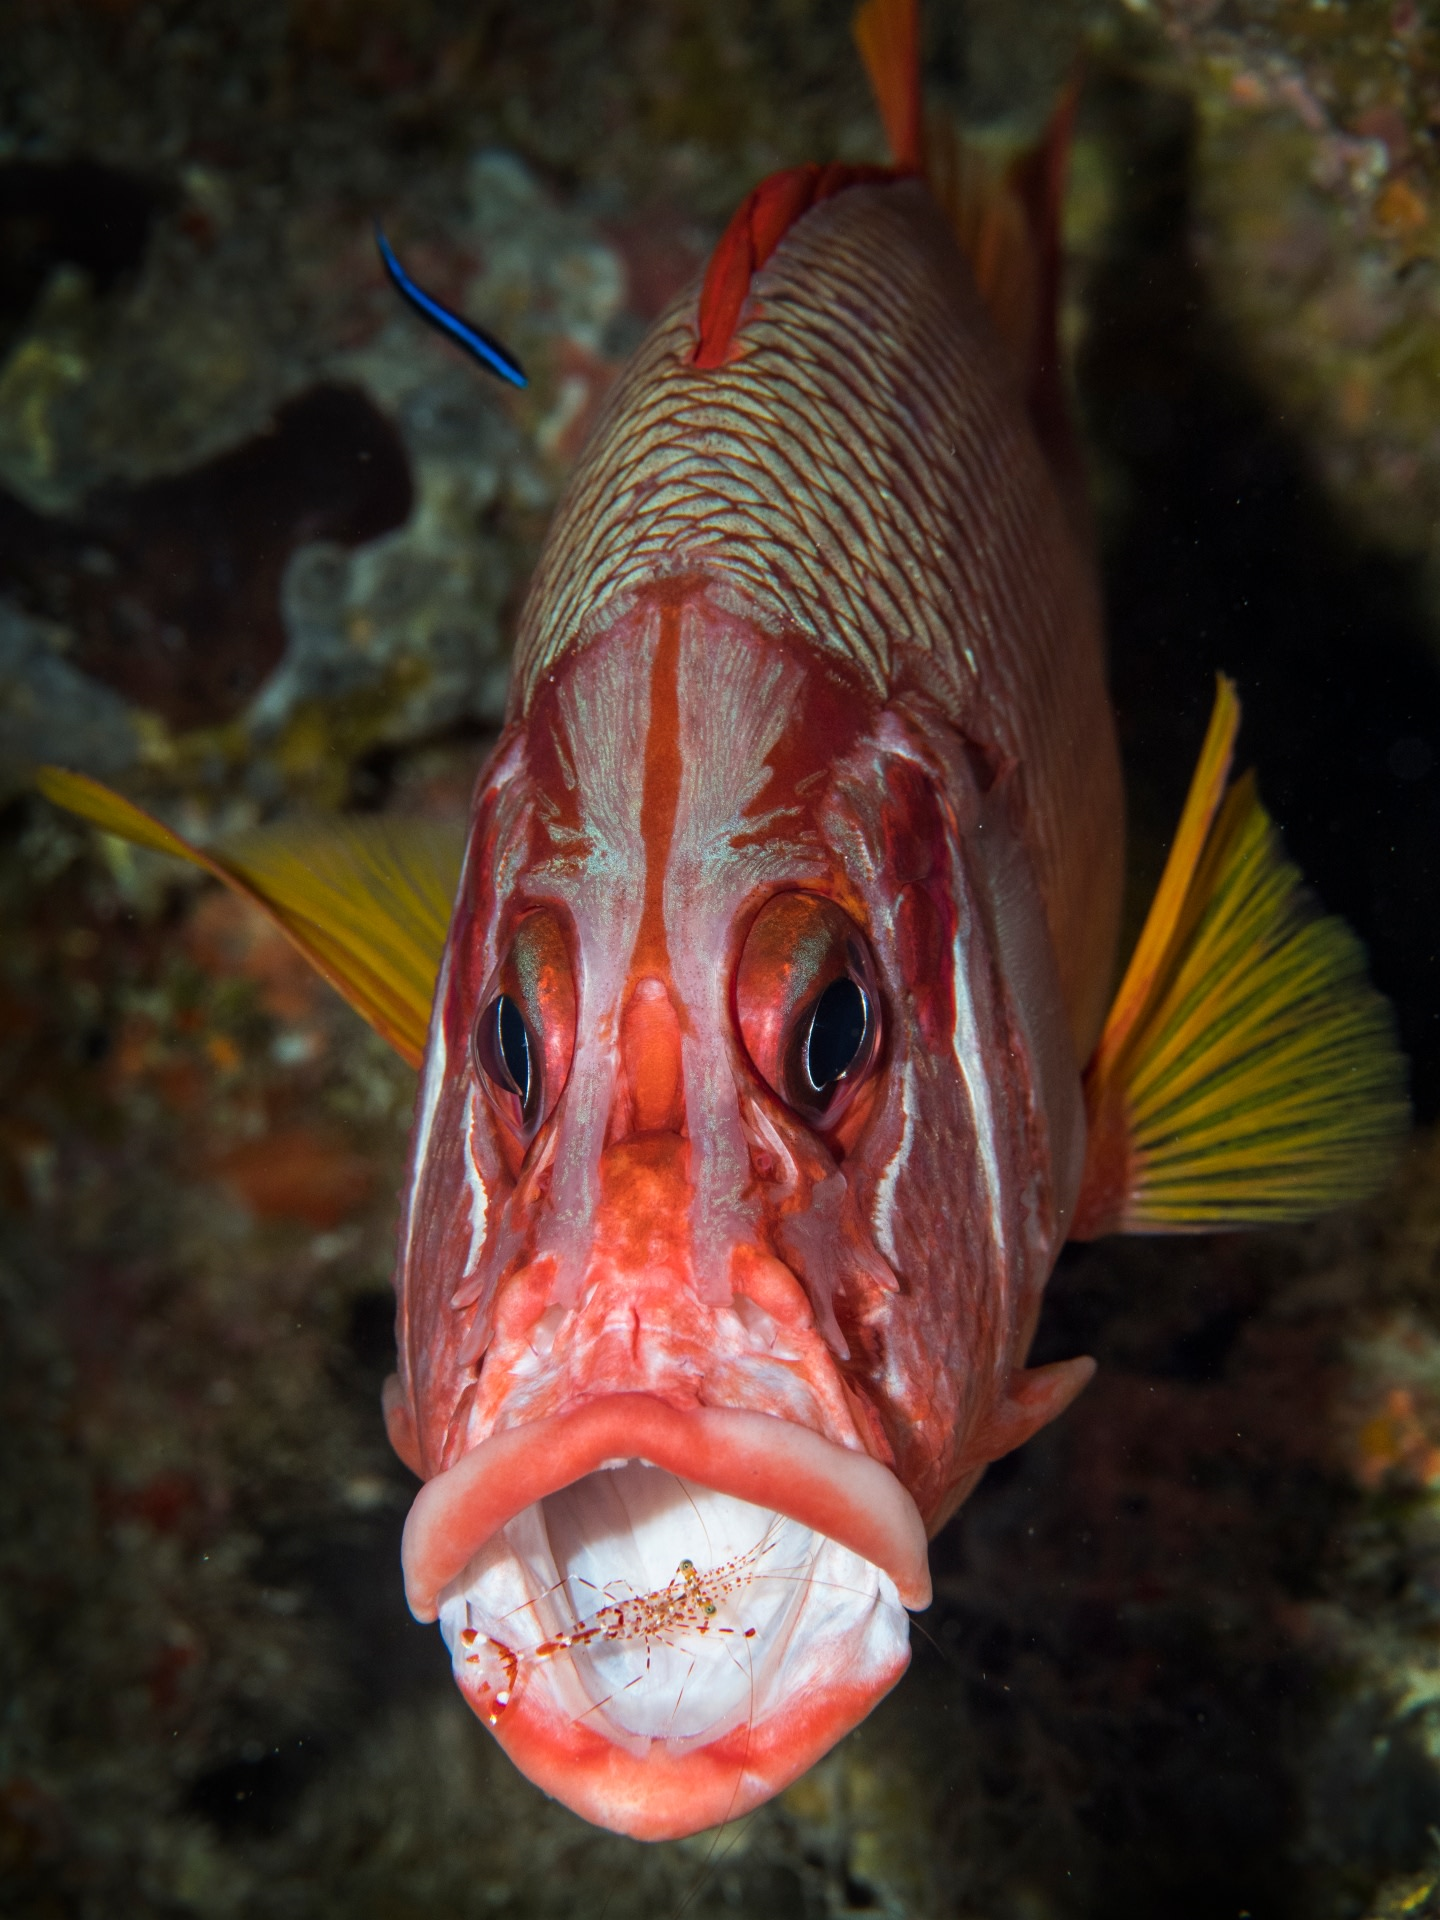 A sabre squirrelfish getting a wholesome cleaning, as a cleaner shrimp works in its mouth and a cleaner wrasse tends to its scales.